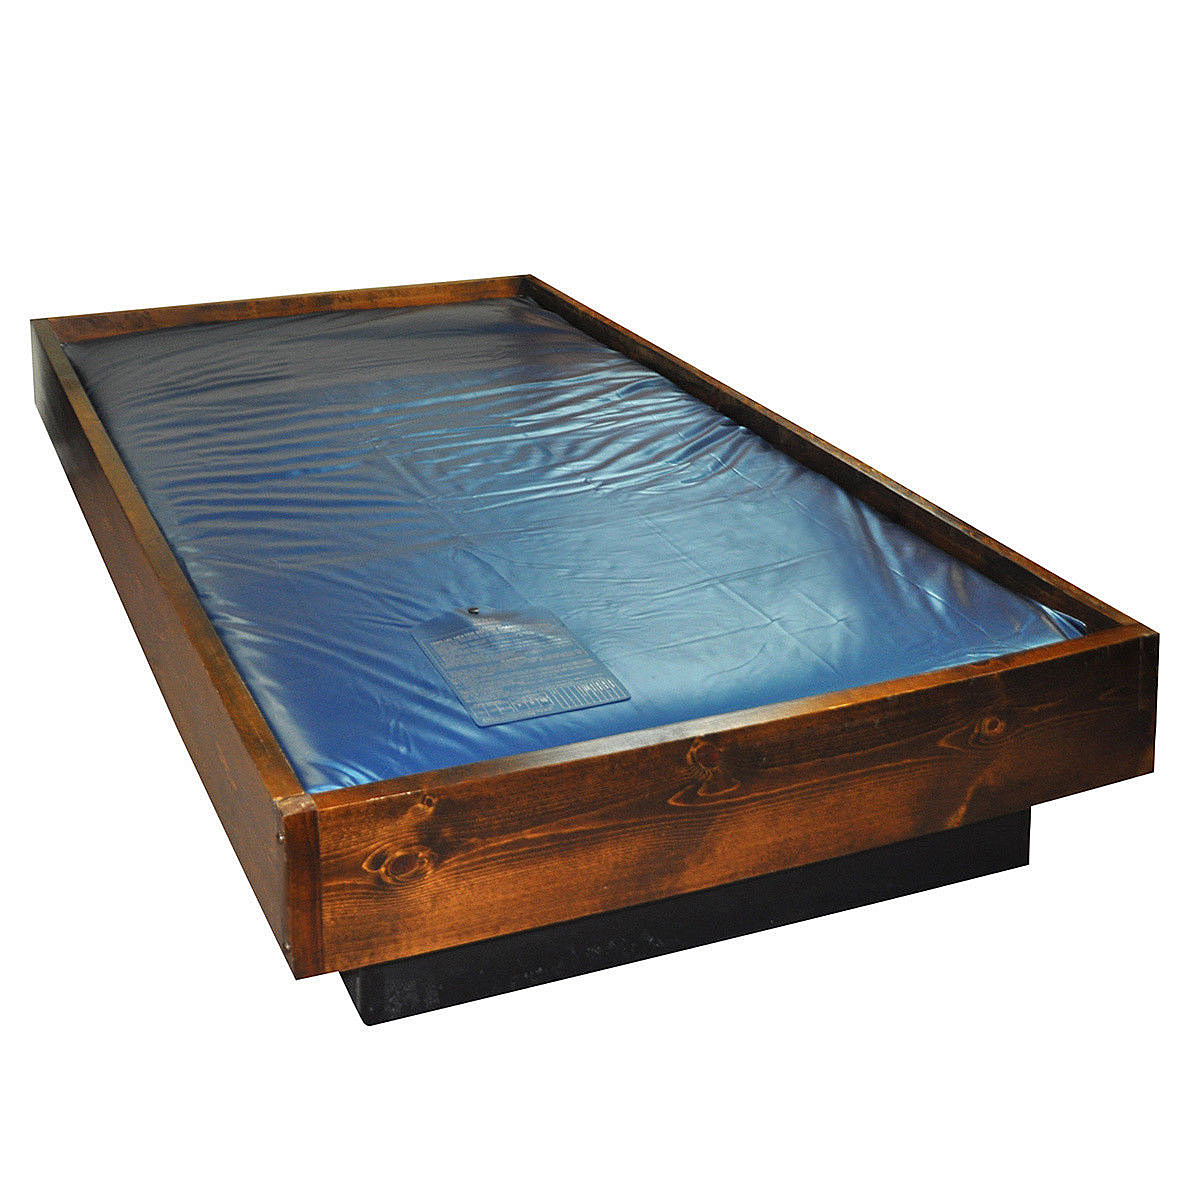 Do they still make waterbeds